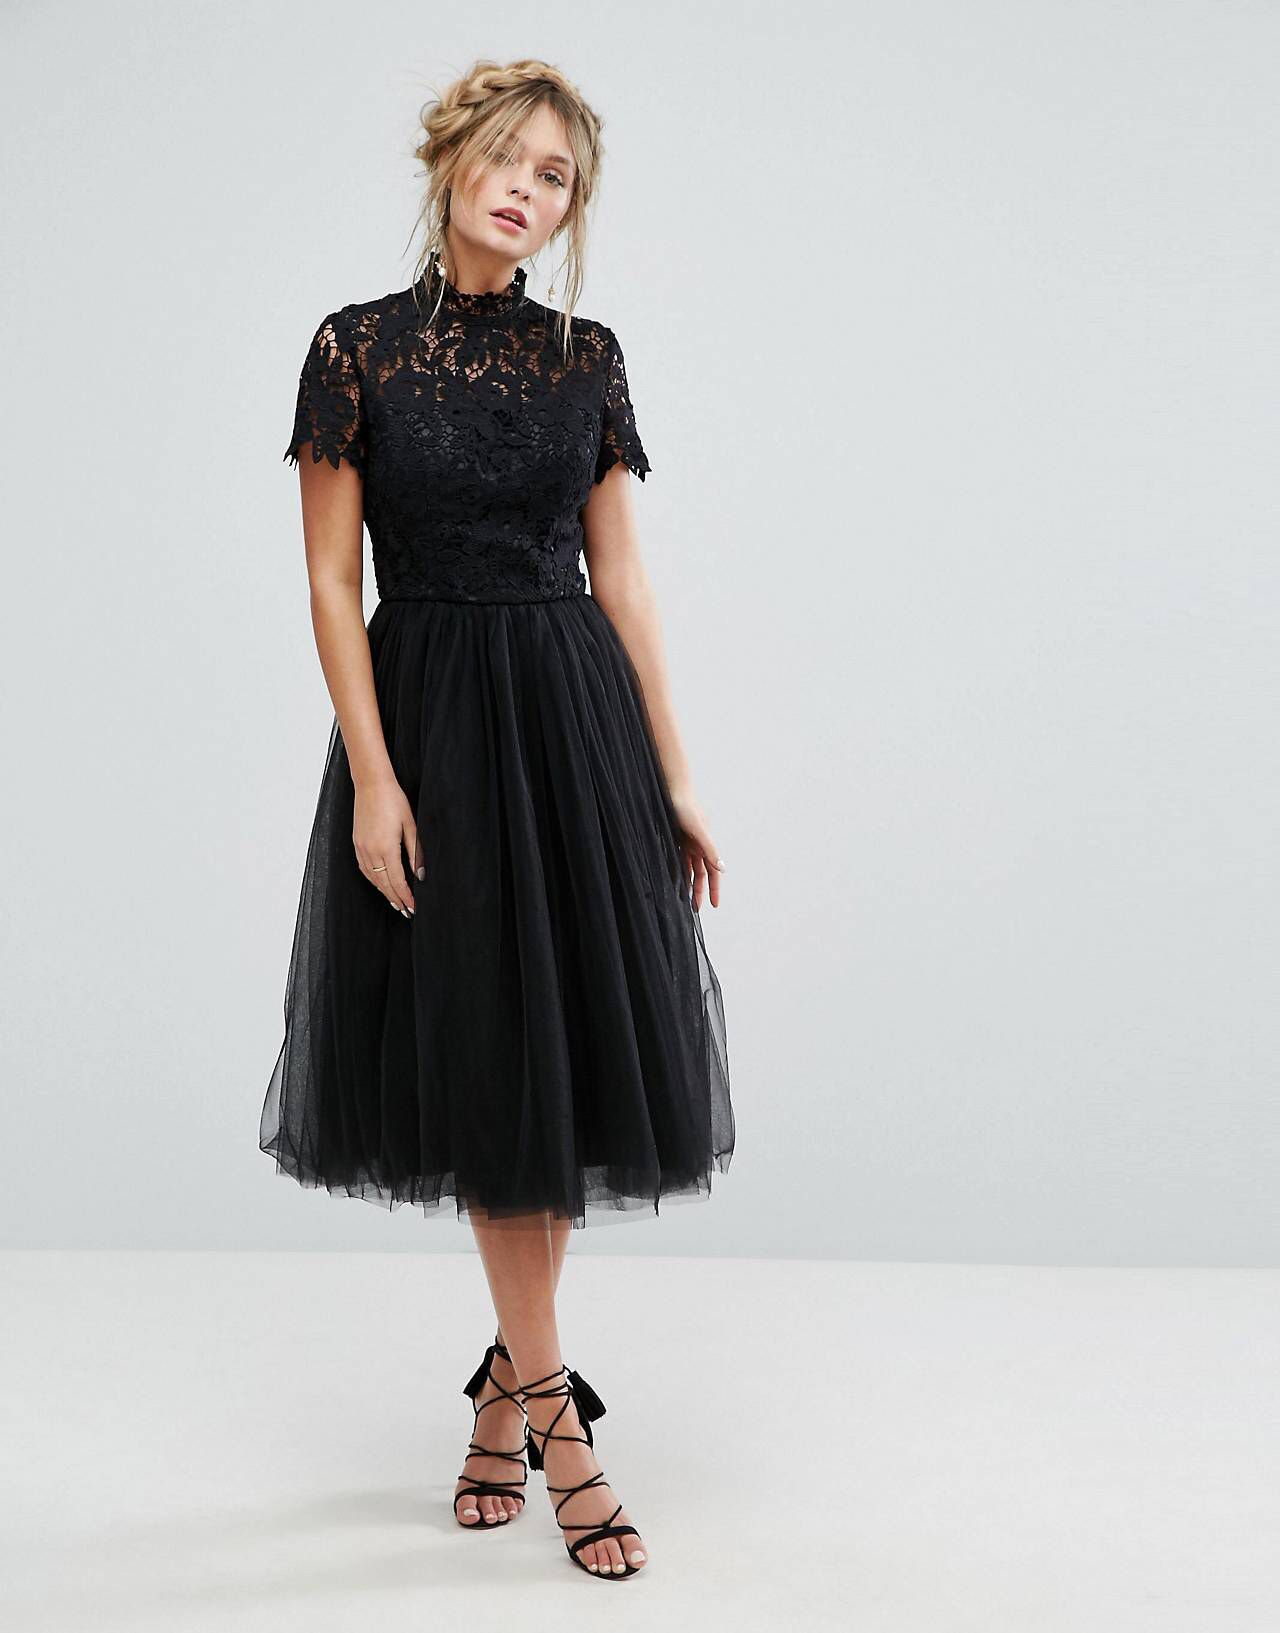 96b8efbc Chi Chi London High Neck Lace Midi Dress With Tulle Skirt In Black